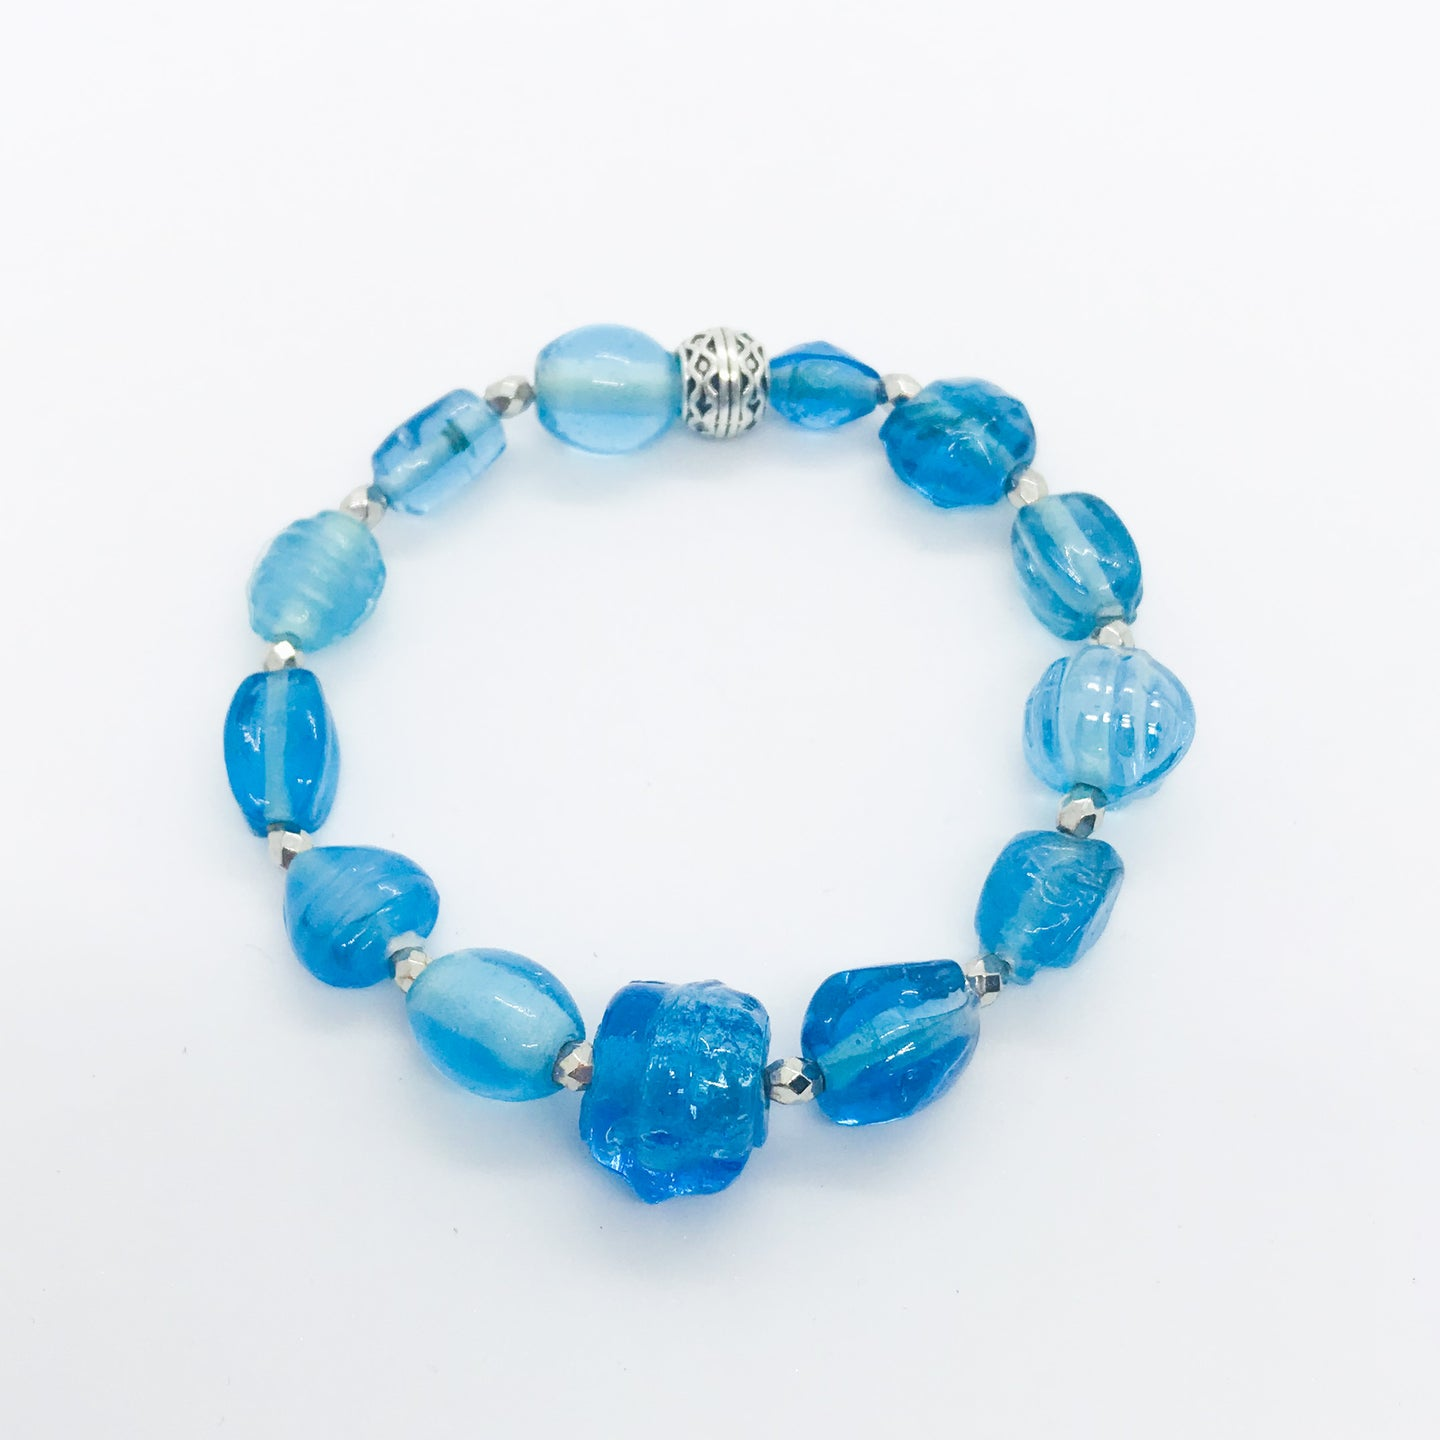 Glass Bead Stretchy Bracelet - B350